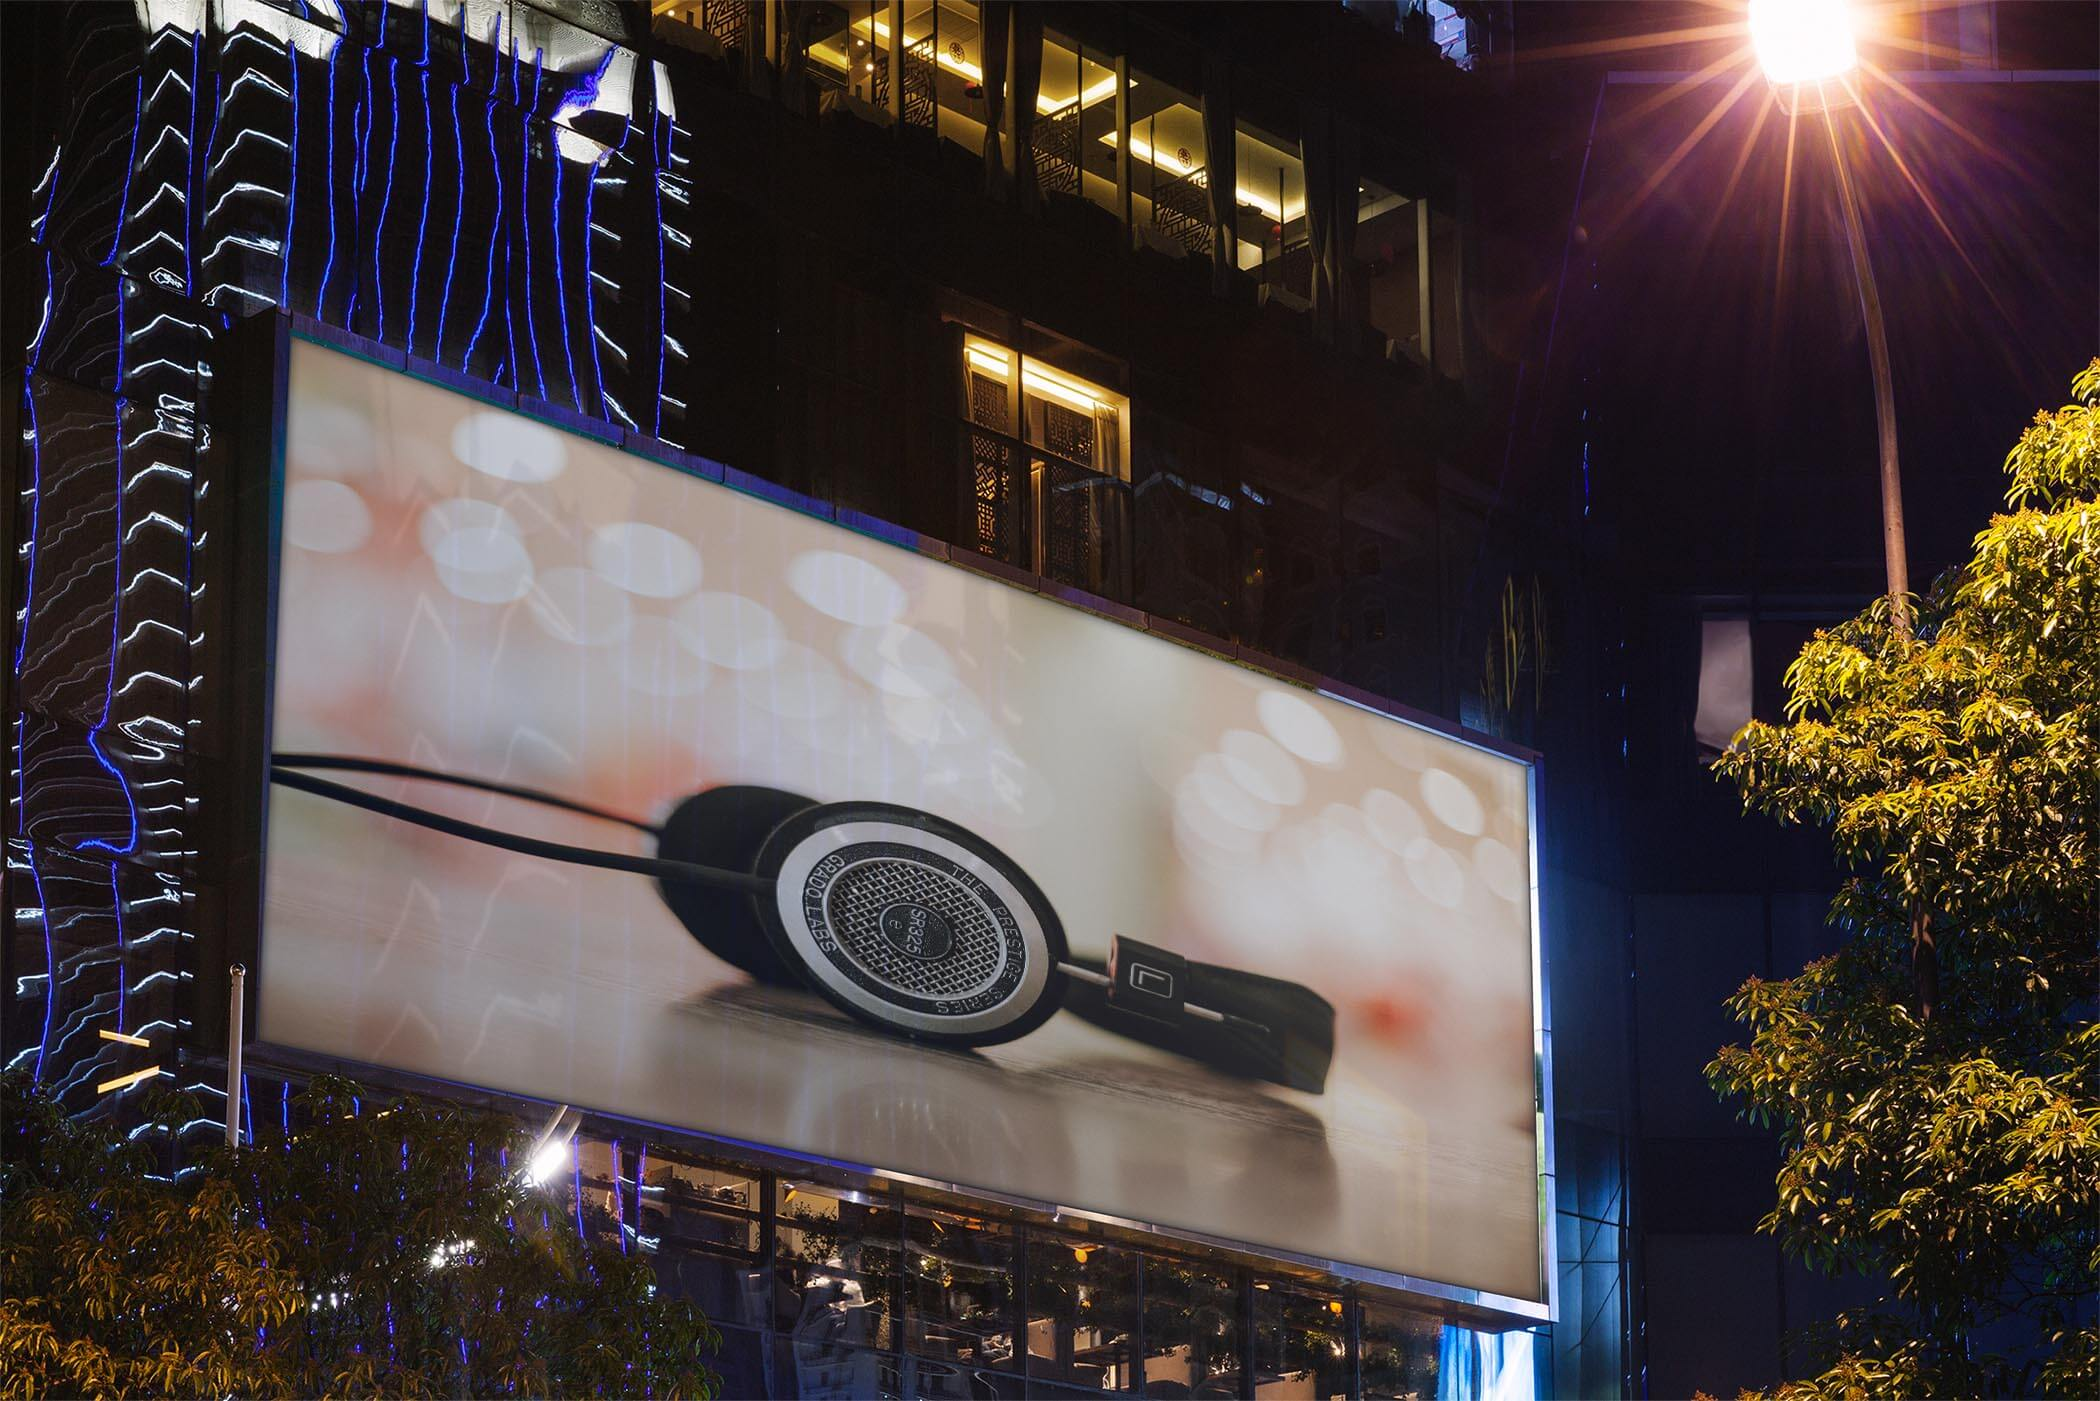 The Another 8 Best Songs for Testing Your Headphones or Speakers